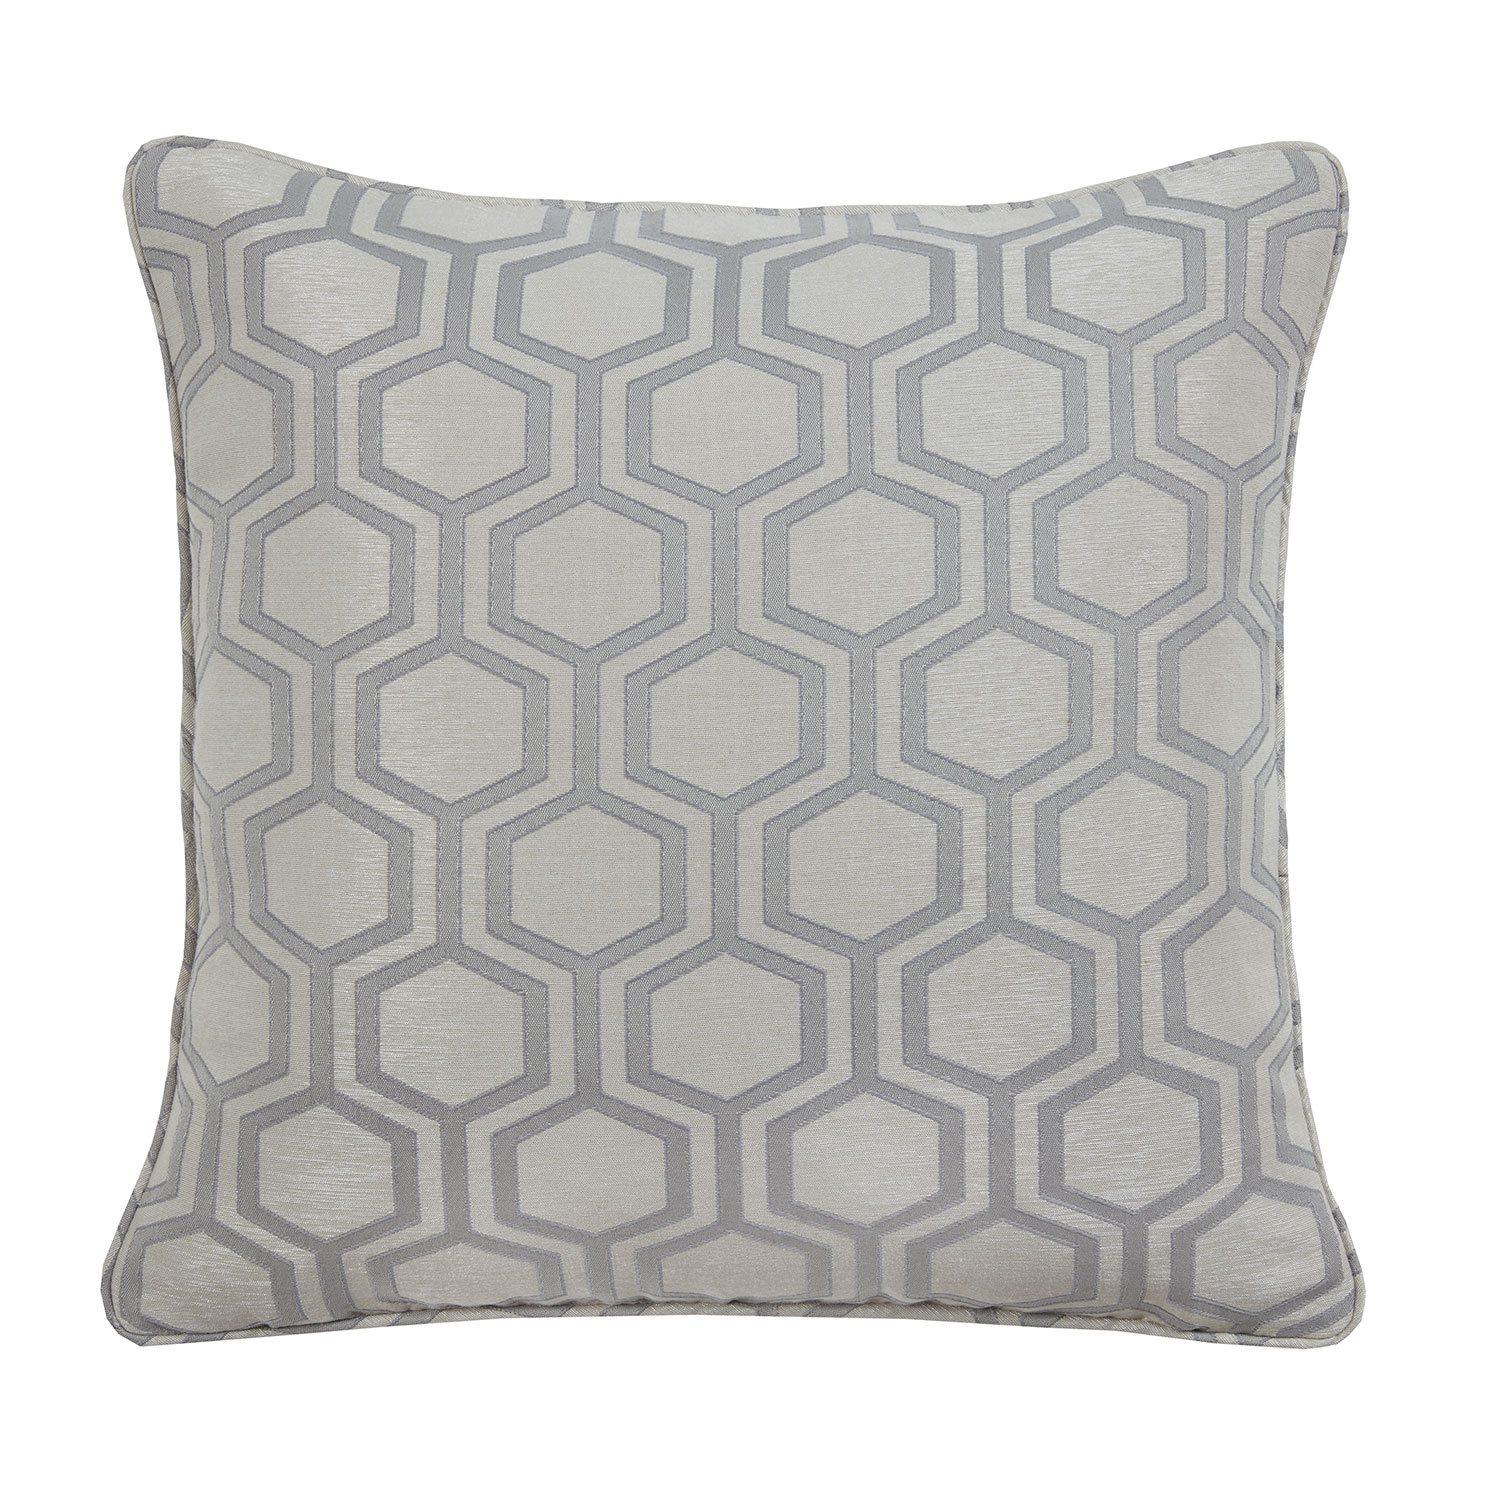 Aurora Silver Geometric Luxury Filled Square Cushion